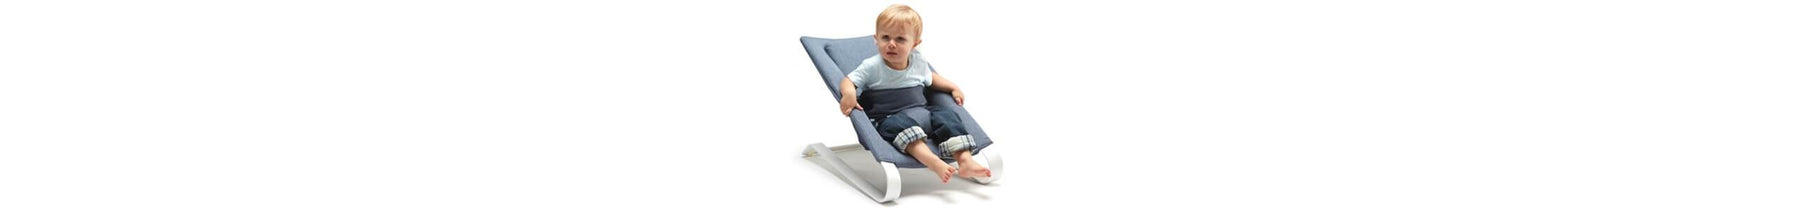 Baby bouncer Bombol® - blond toddler seating